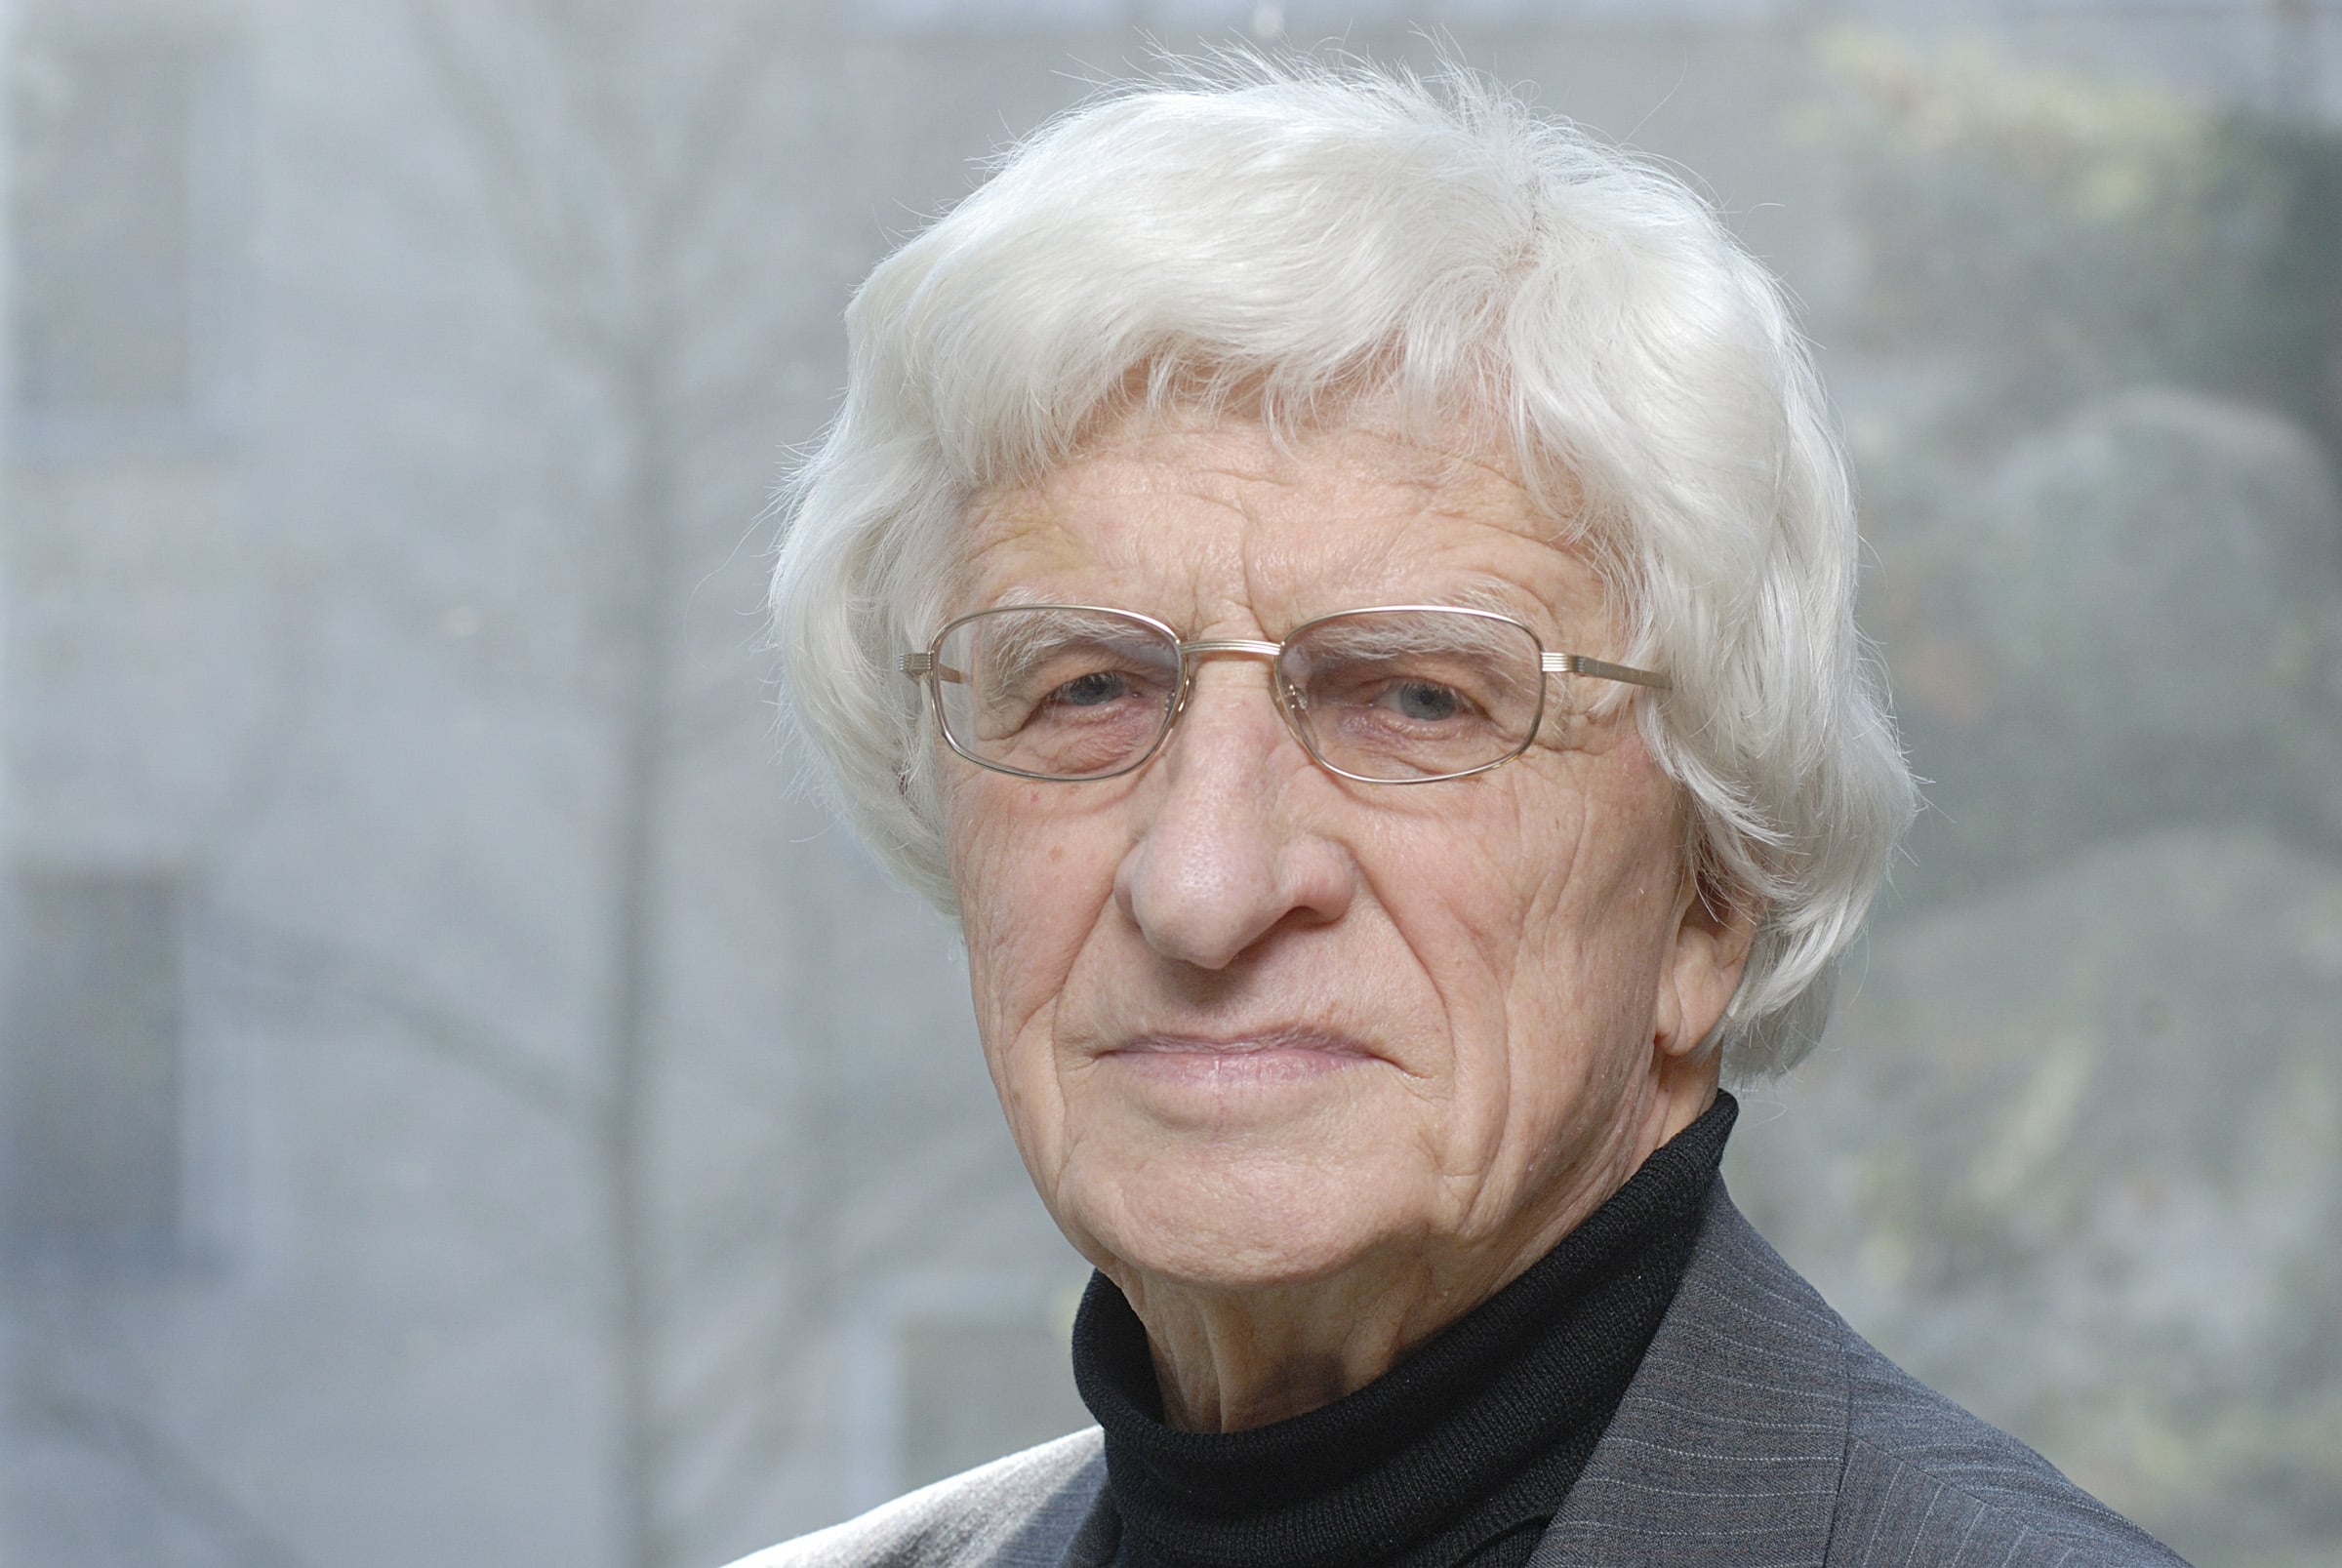 Lithuania mourns leading composer